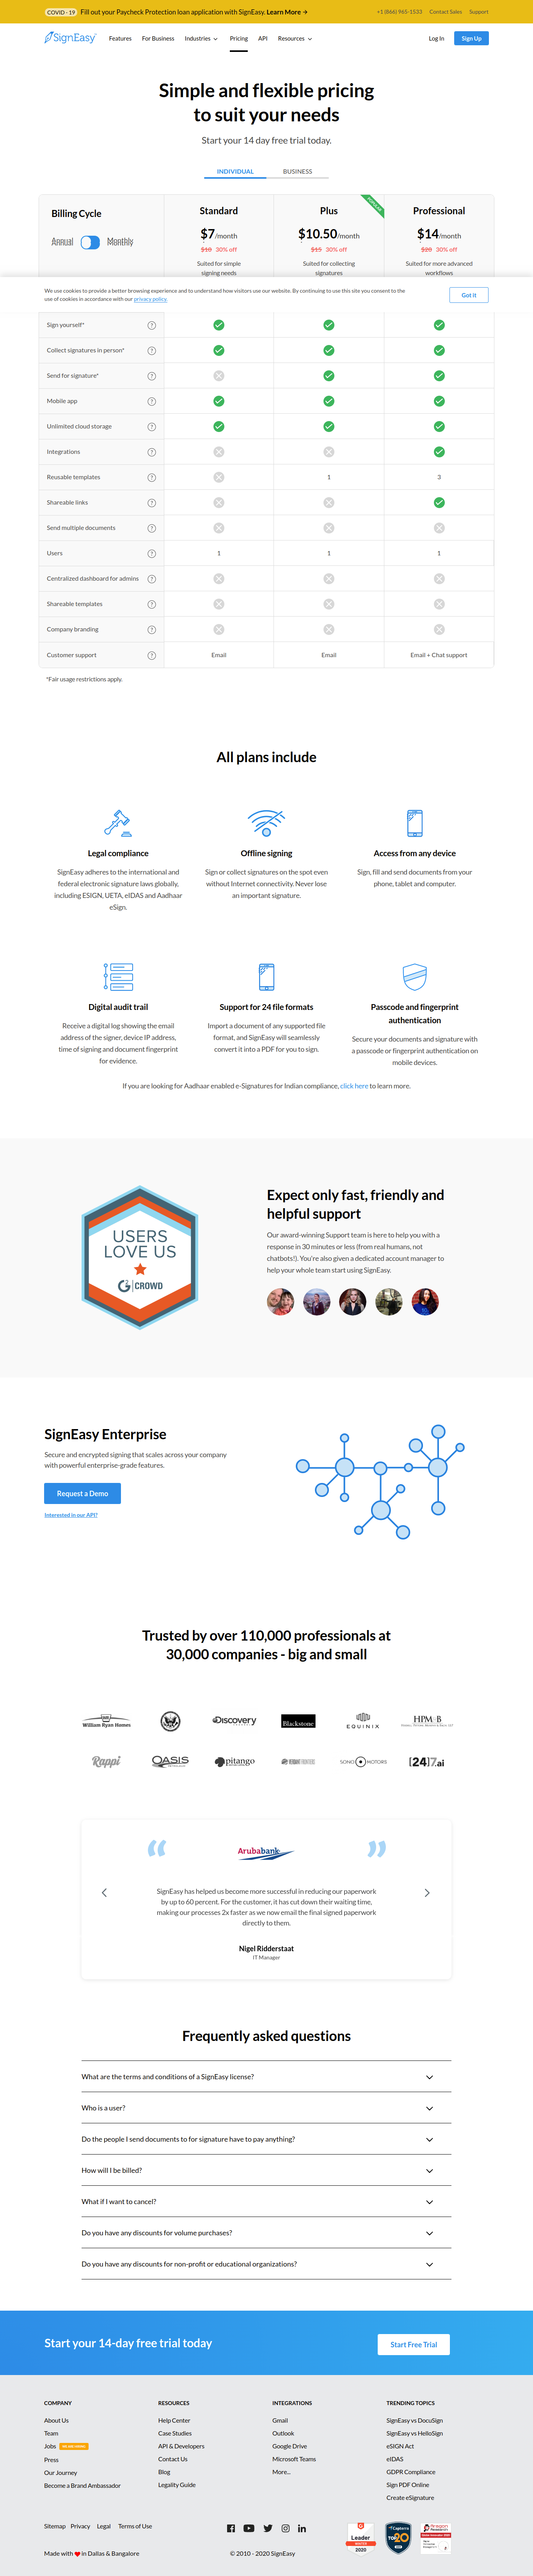 SignEasy pricing page